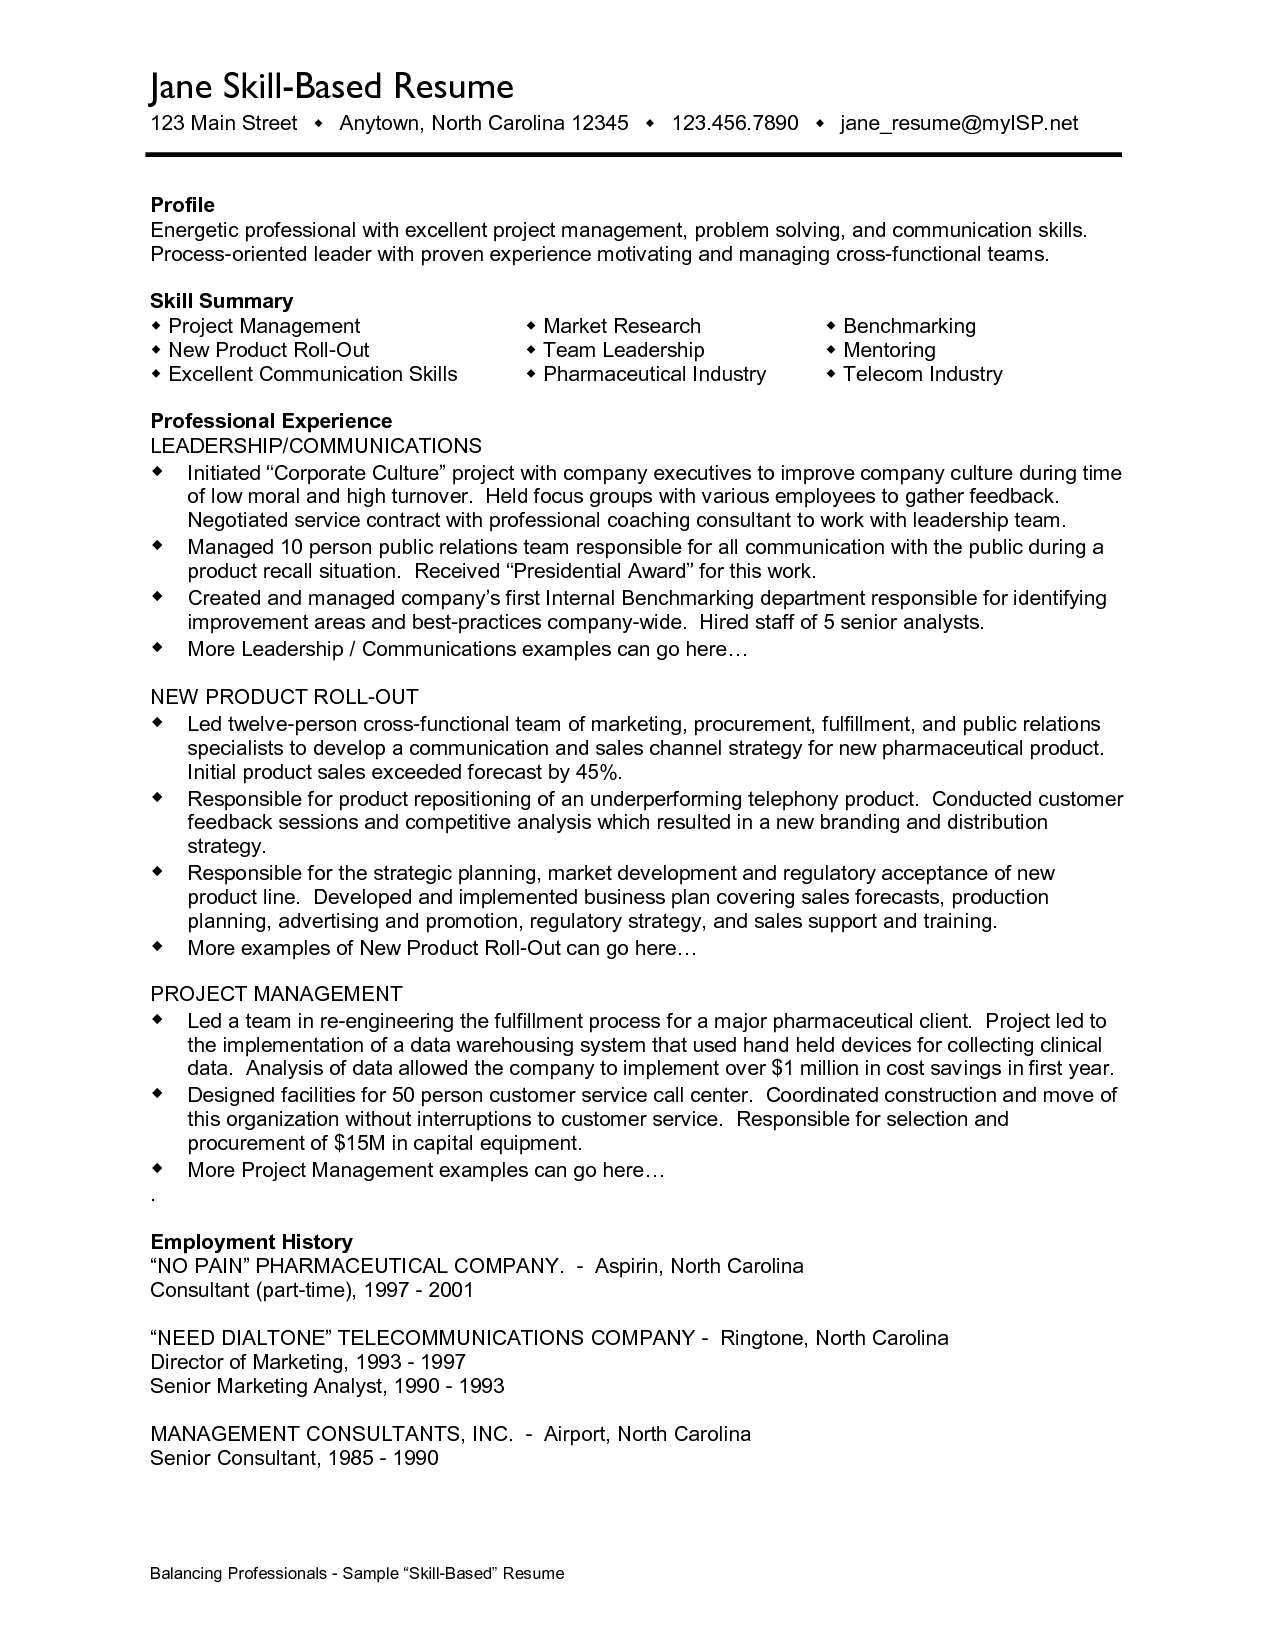 Resume Examples Skills Fascinating Job Resume Communication Skills  Httpwwwresumecareerjob Design Ideas